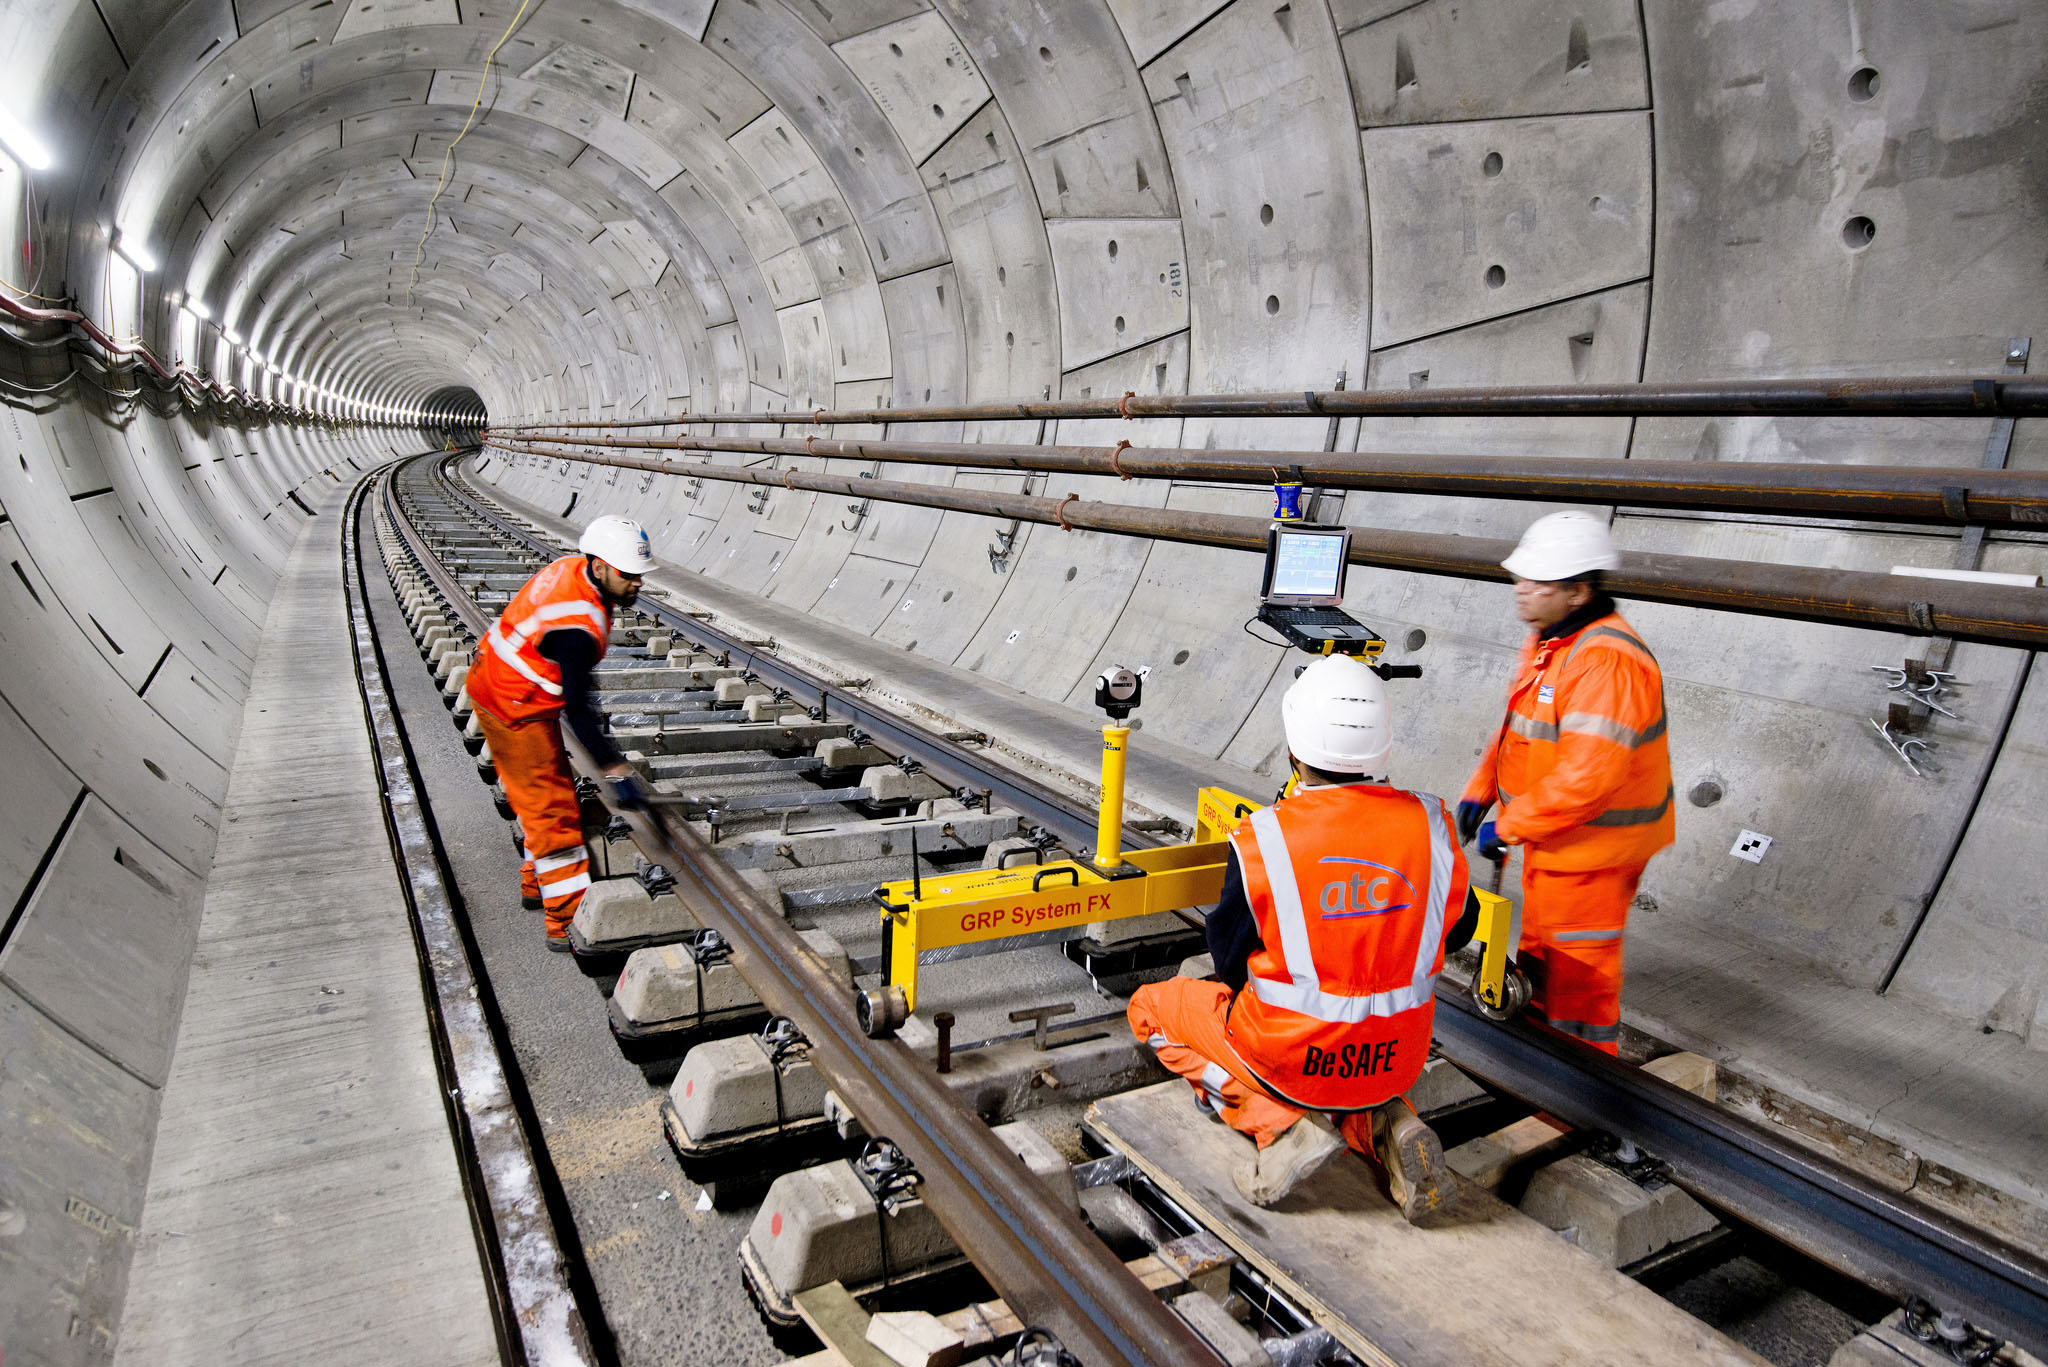 3D Repo BIM App Helps Crossrail Digitally Manage Assets | 3D